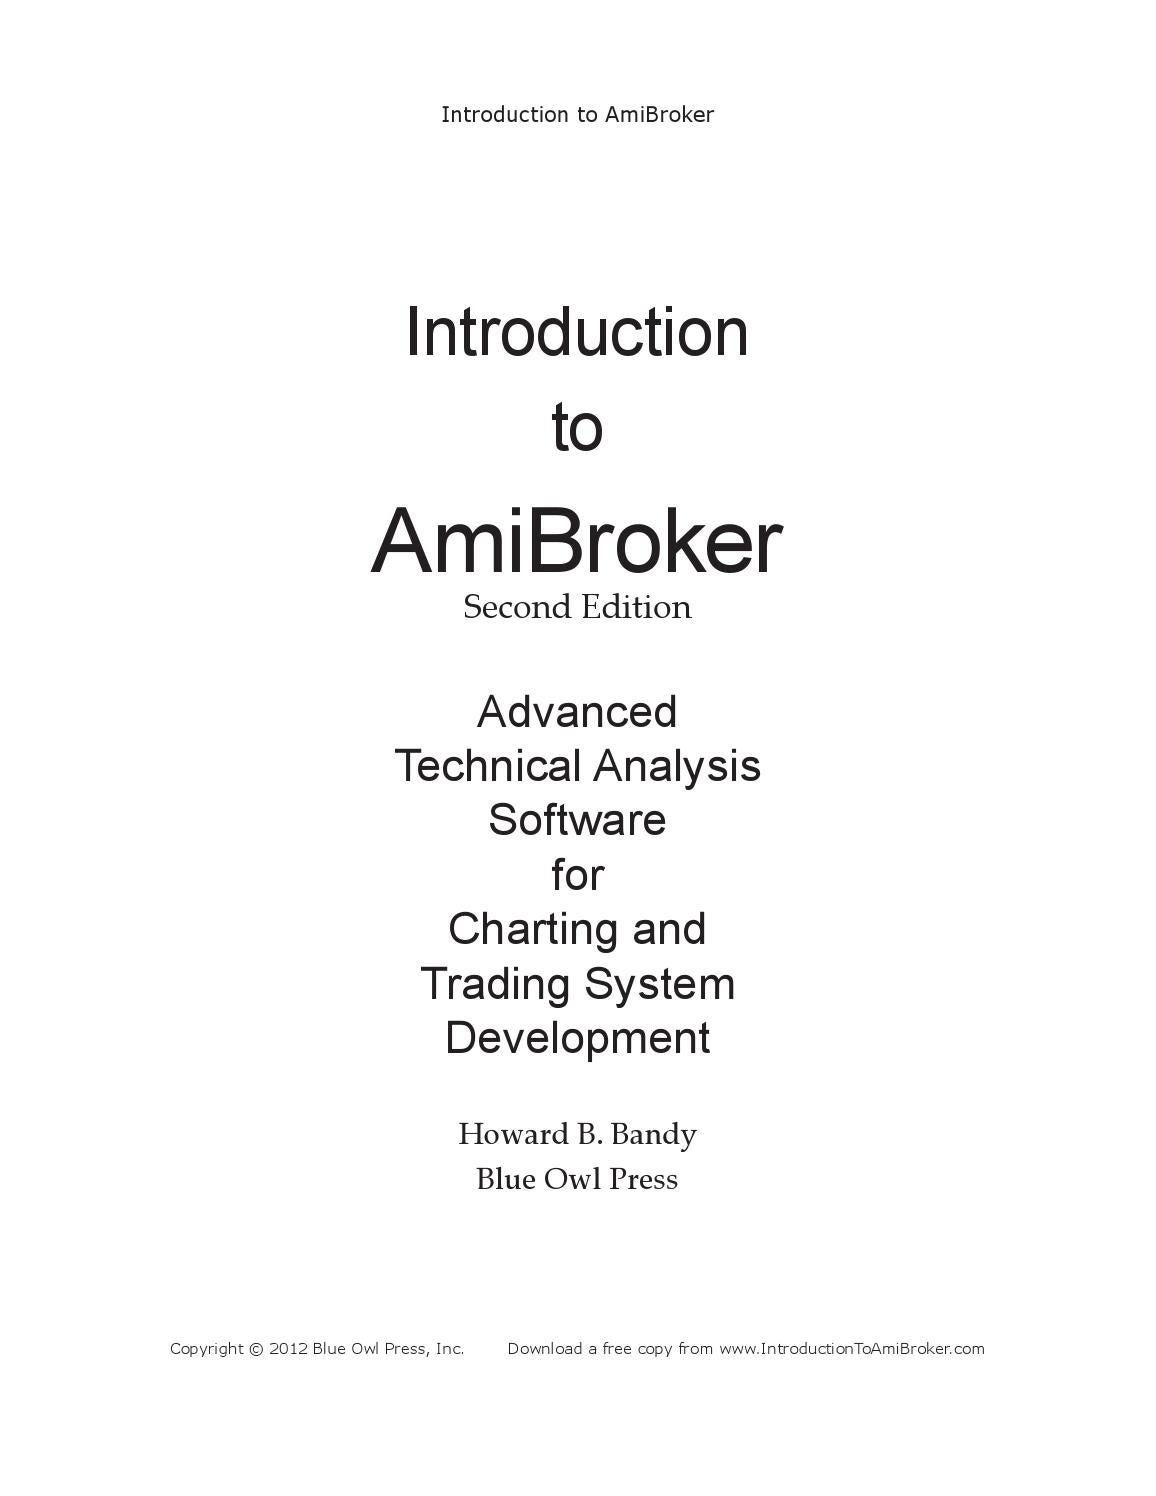 Introductiontoamibroker secondedition by APIWAT TAVESIRIVATE